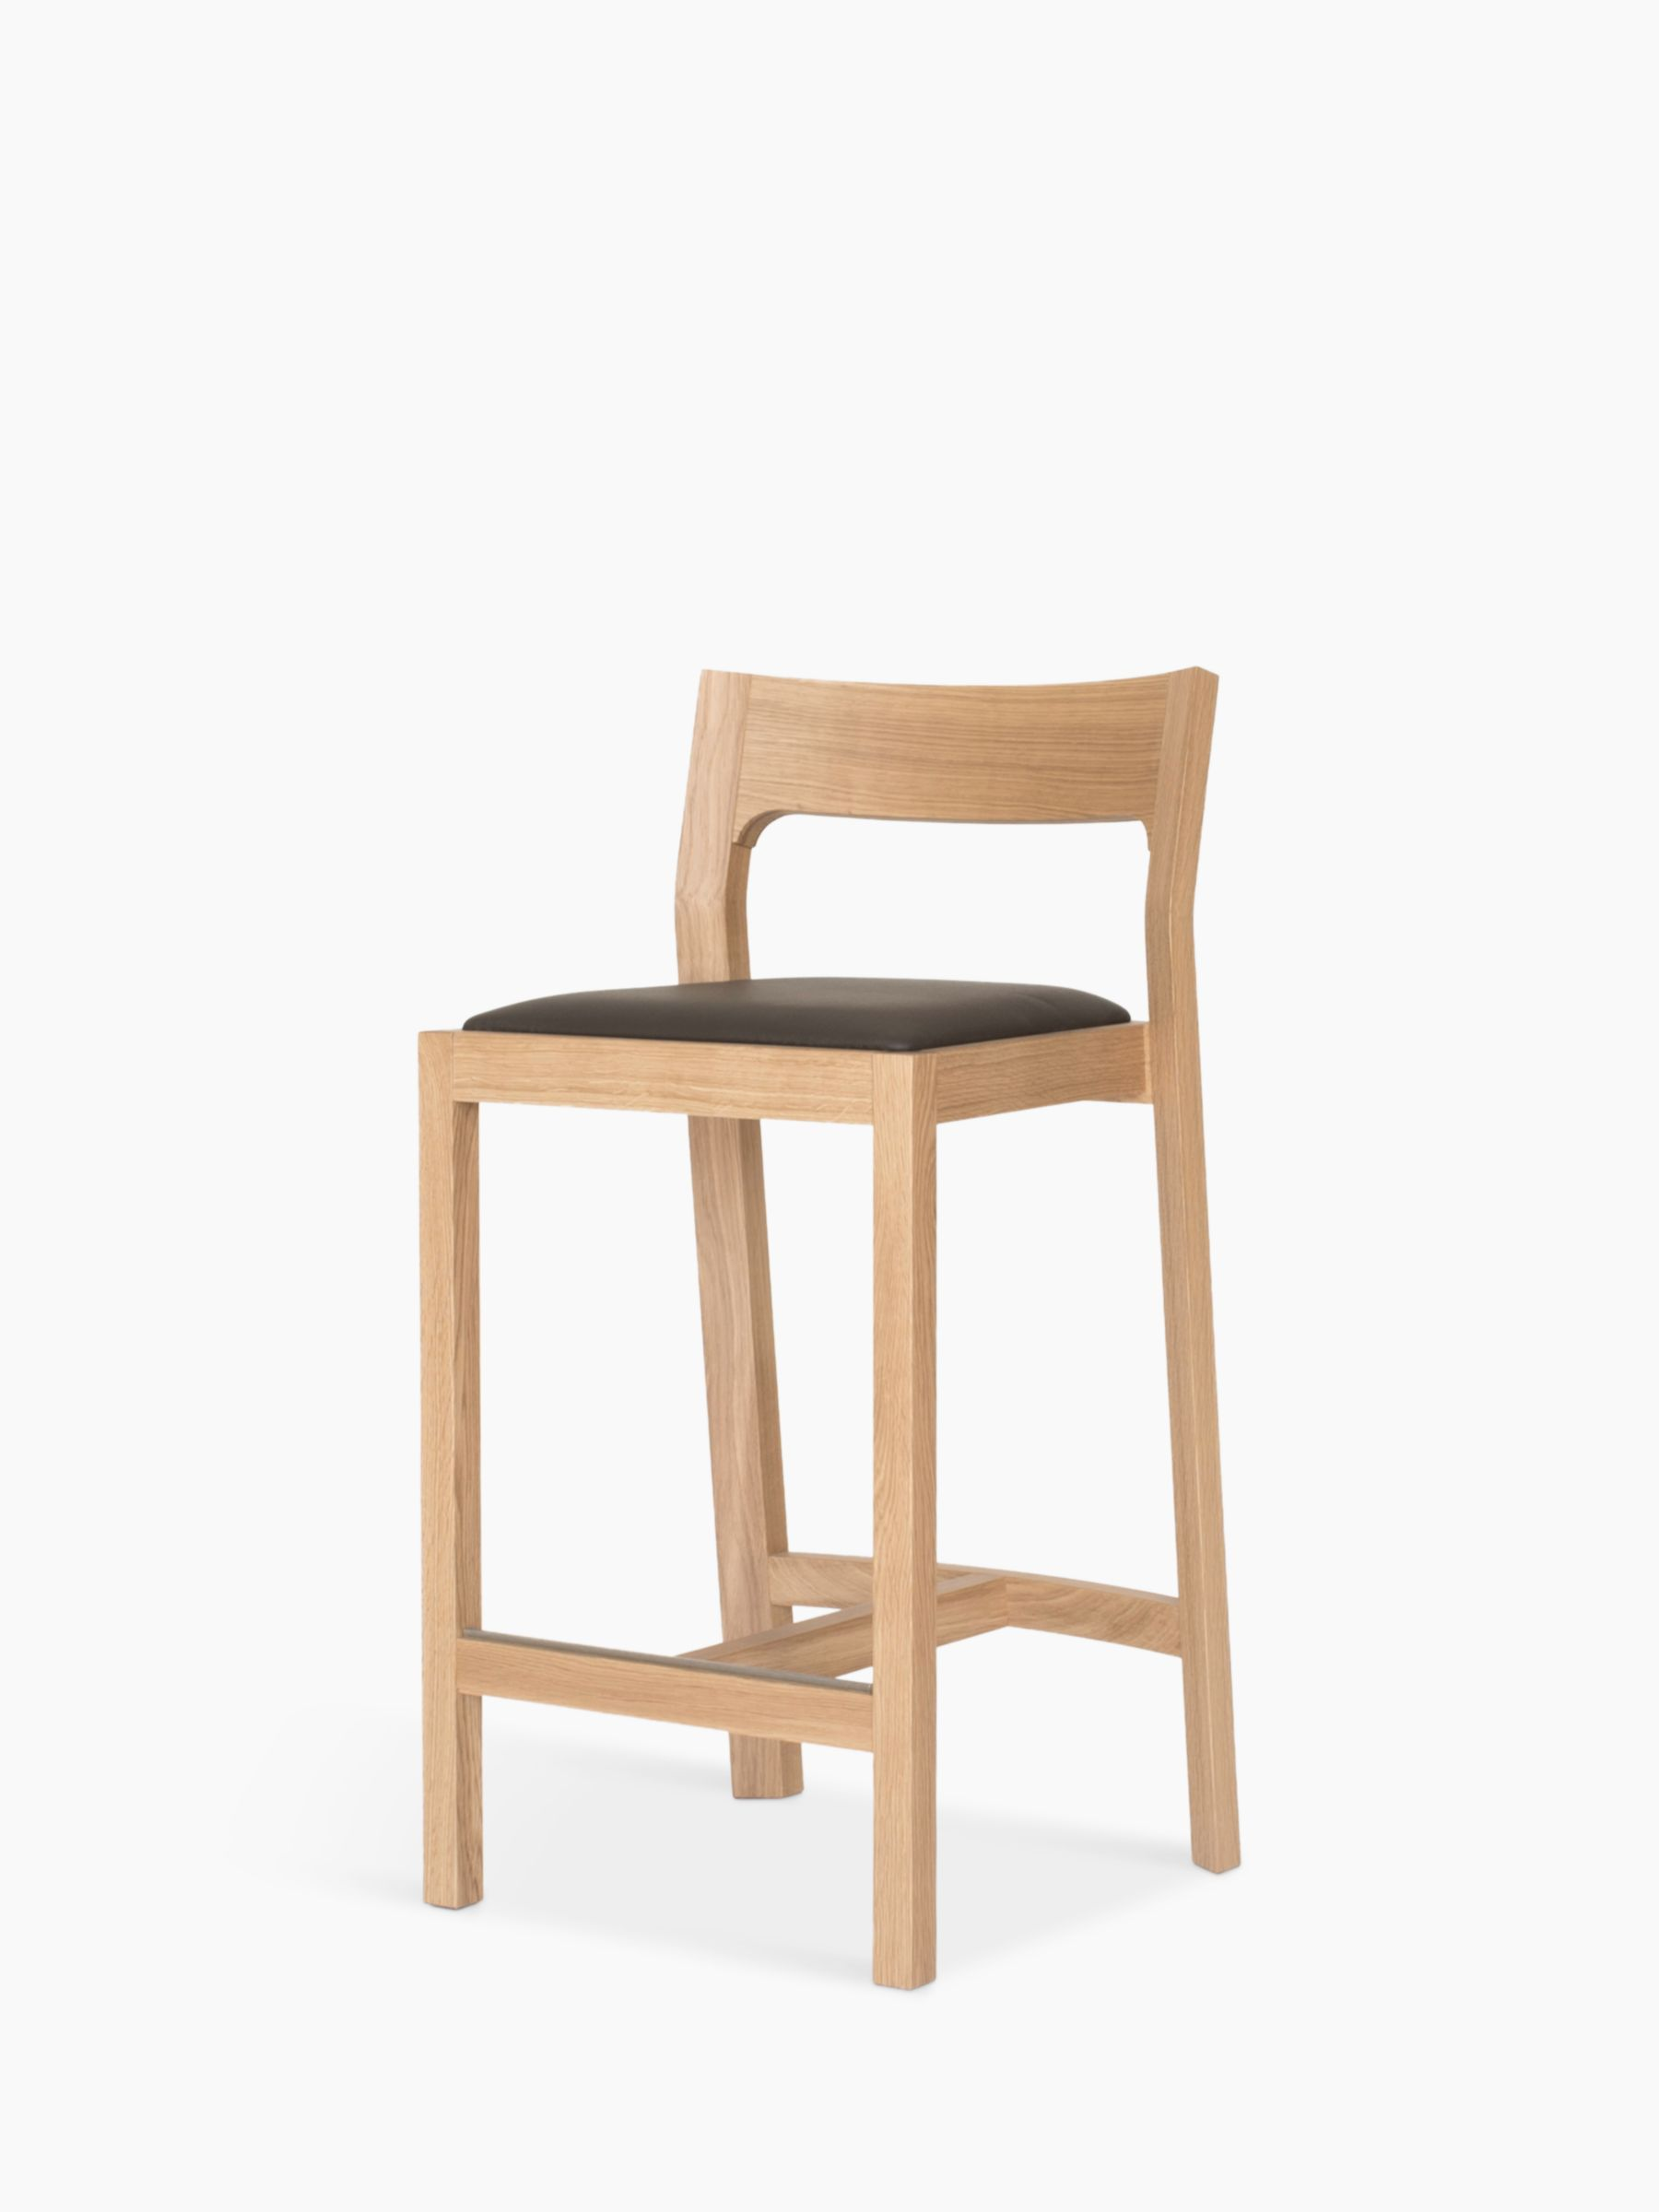 Case Matthew Hilton for Case Profile Bar Chair, Oak